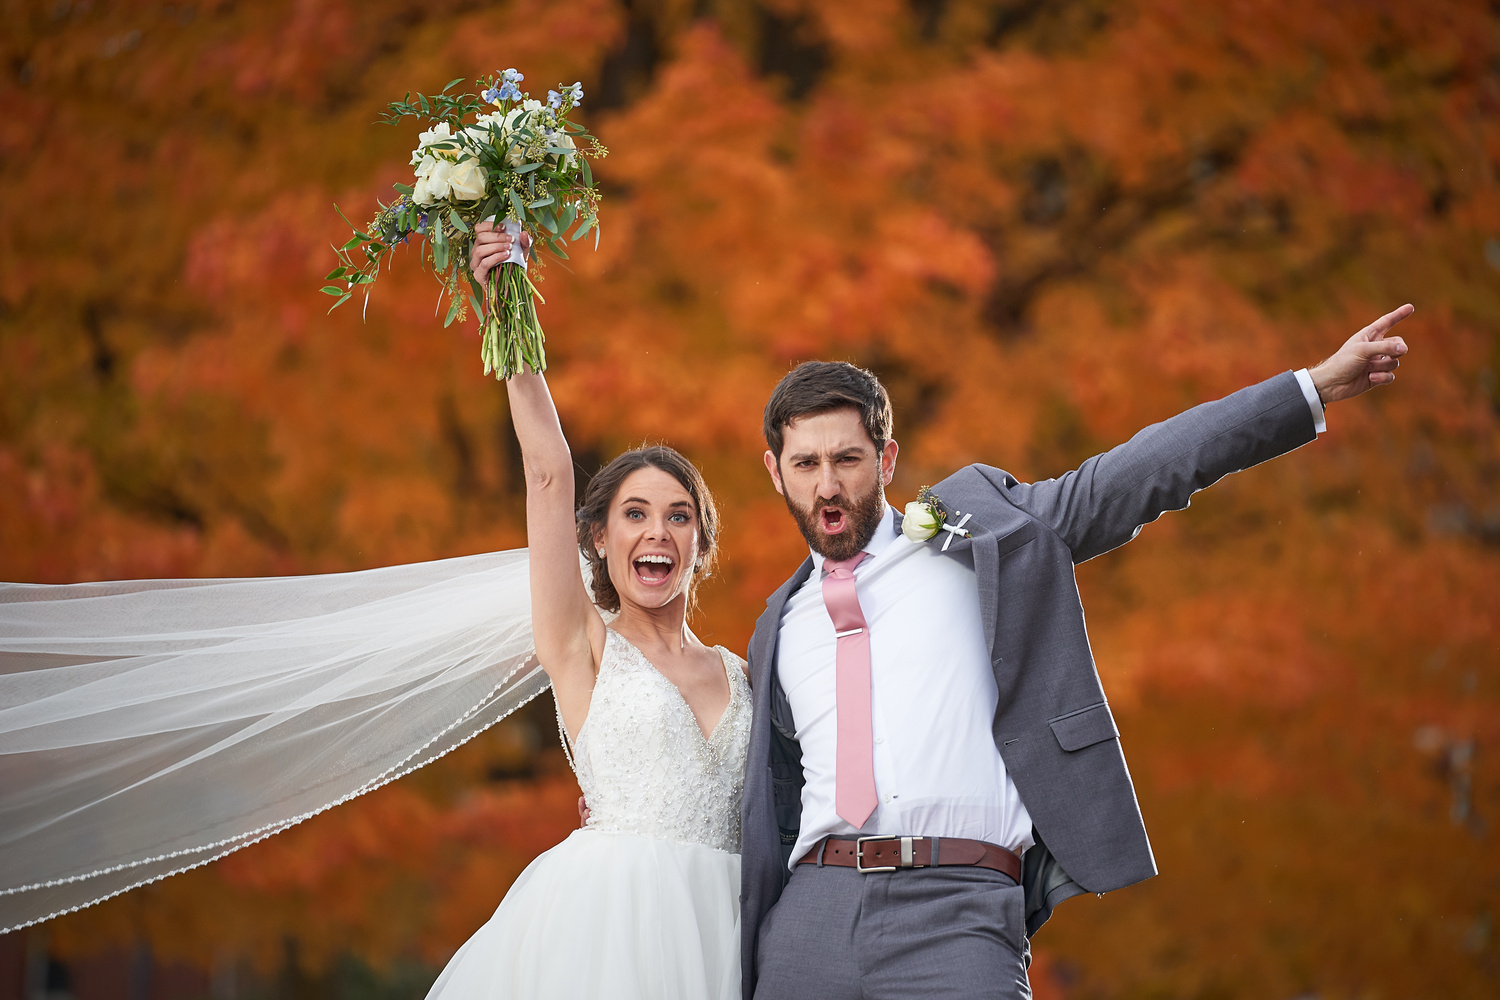 The Happy Couple by Ryan Rupprecht